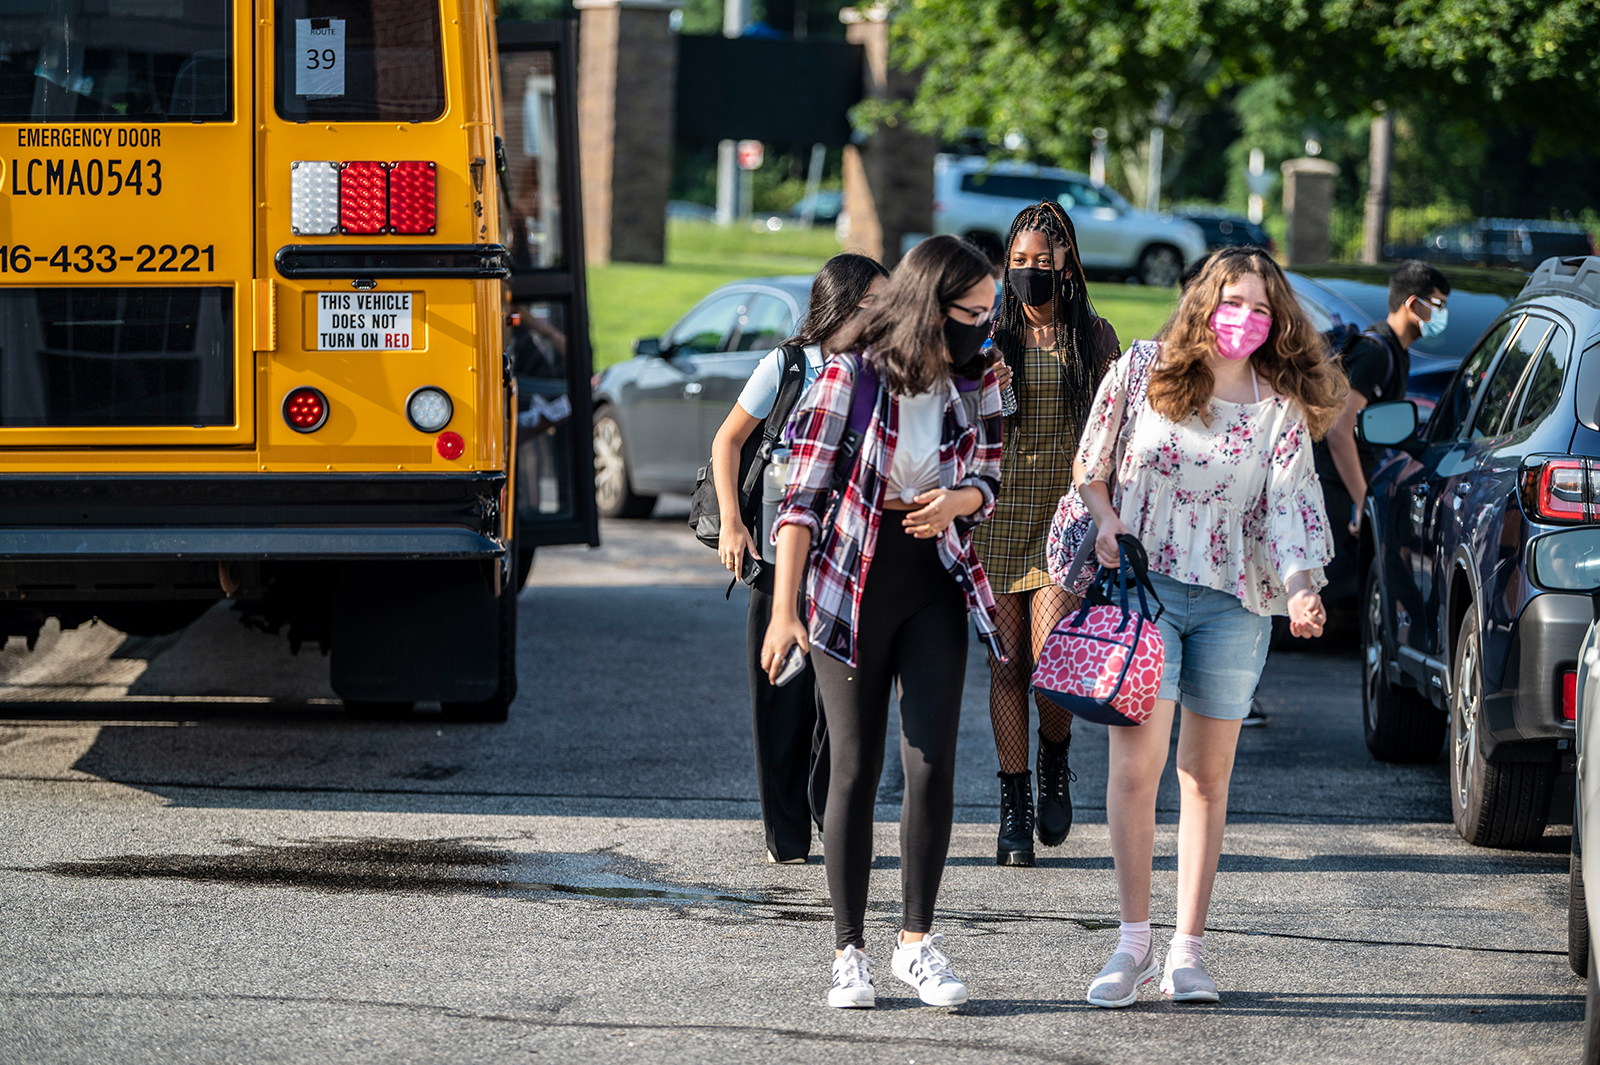 Students return to class on the first day of school at the Jericho, New York school district on August 26, 2021.